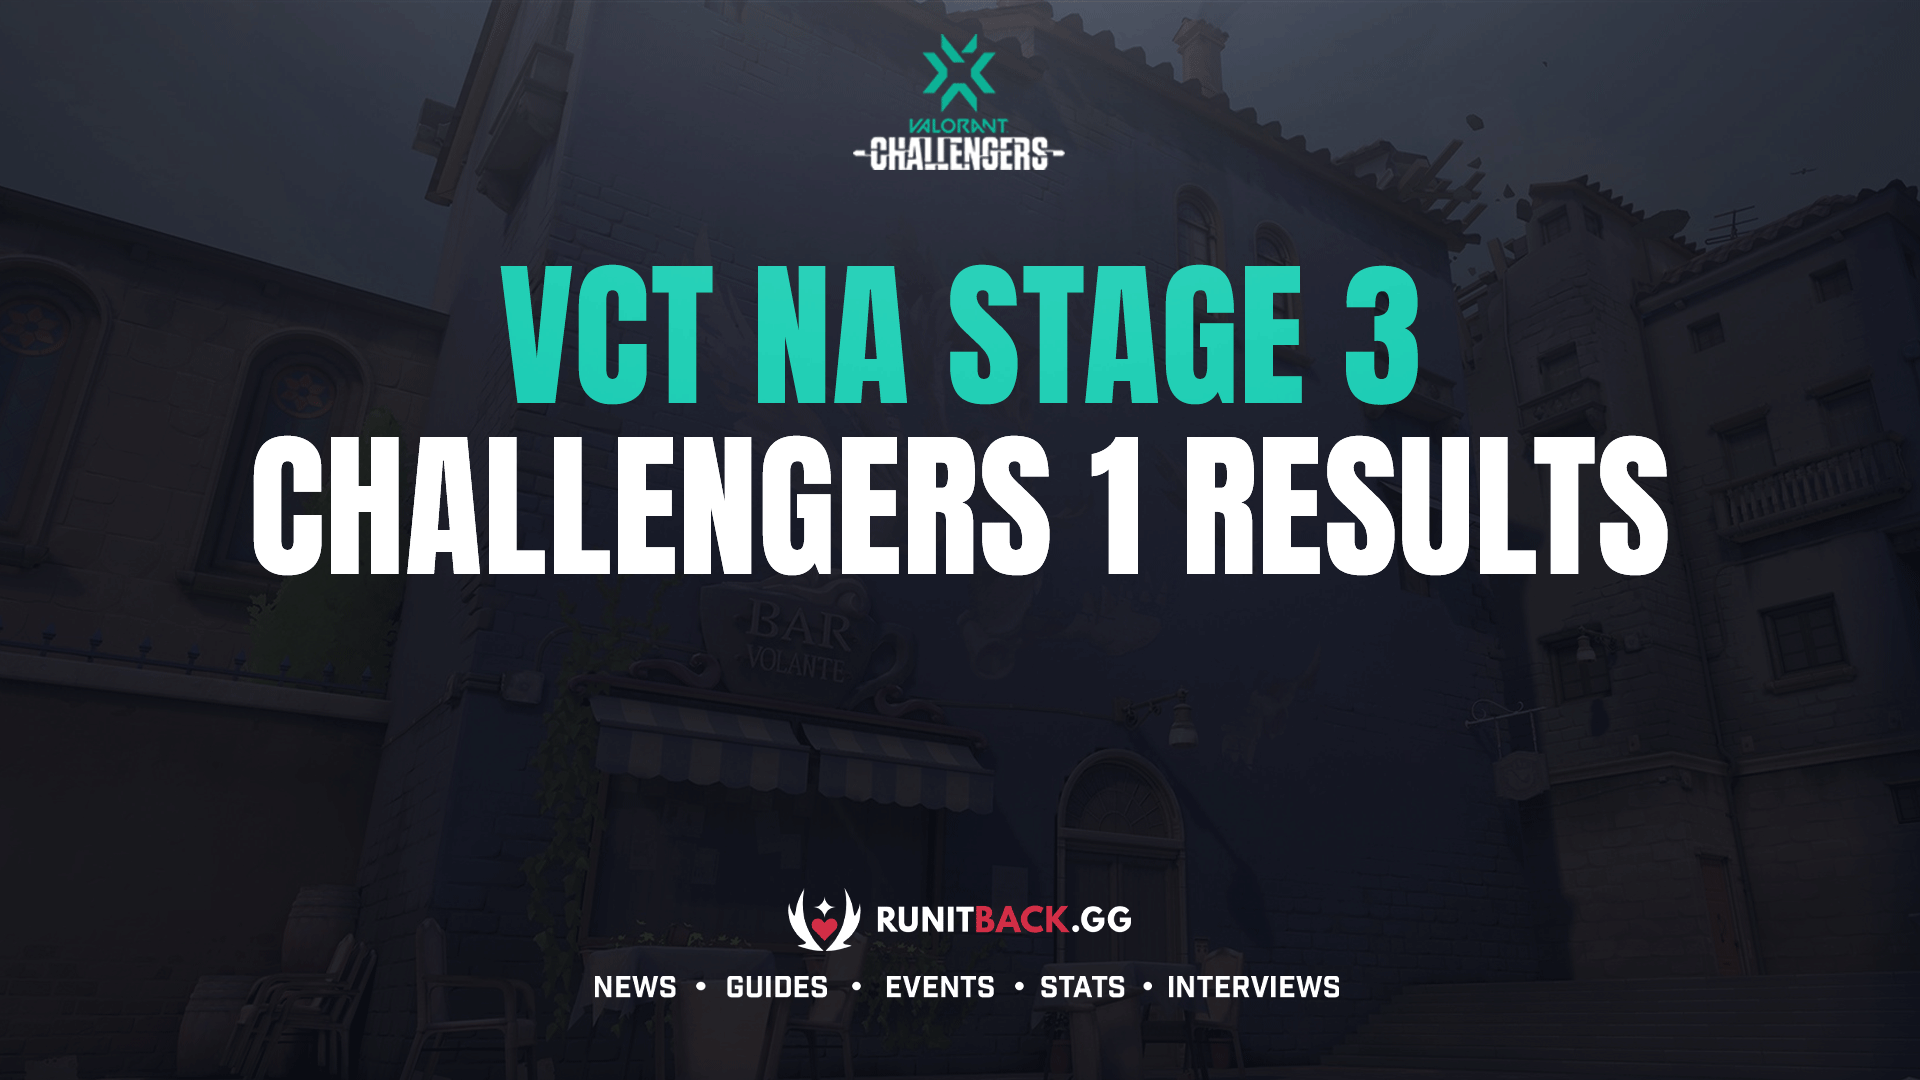 VCT NA Stage 3 Challengers 1 Main Event Results